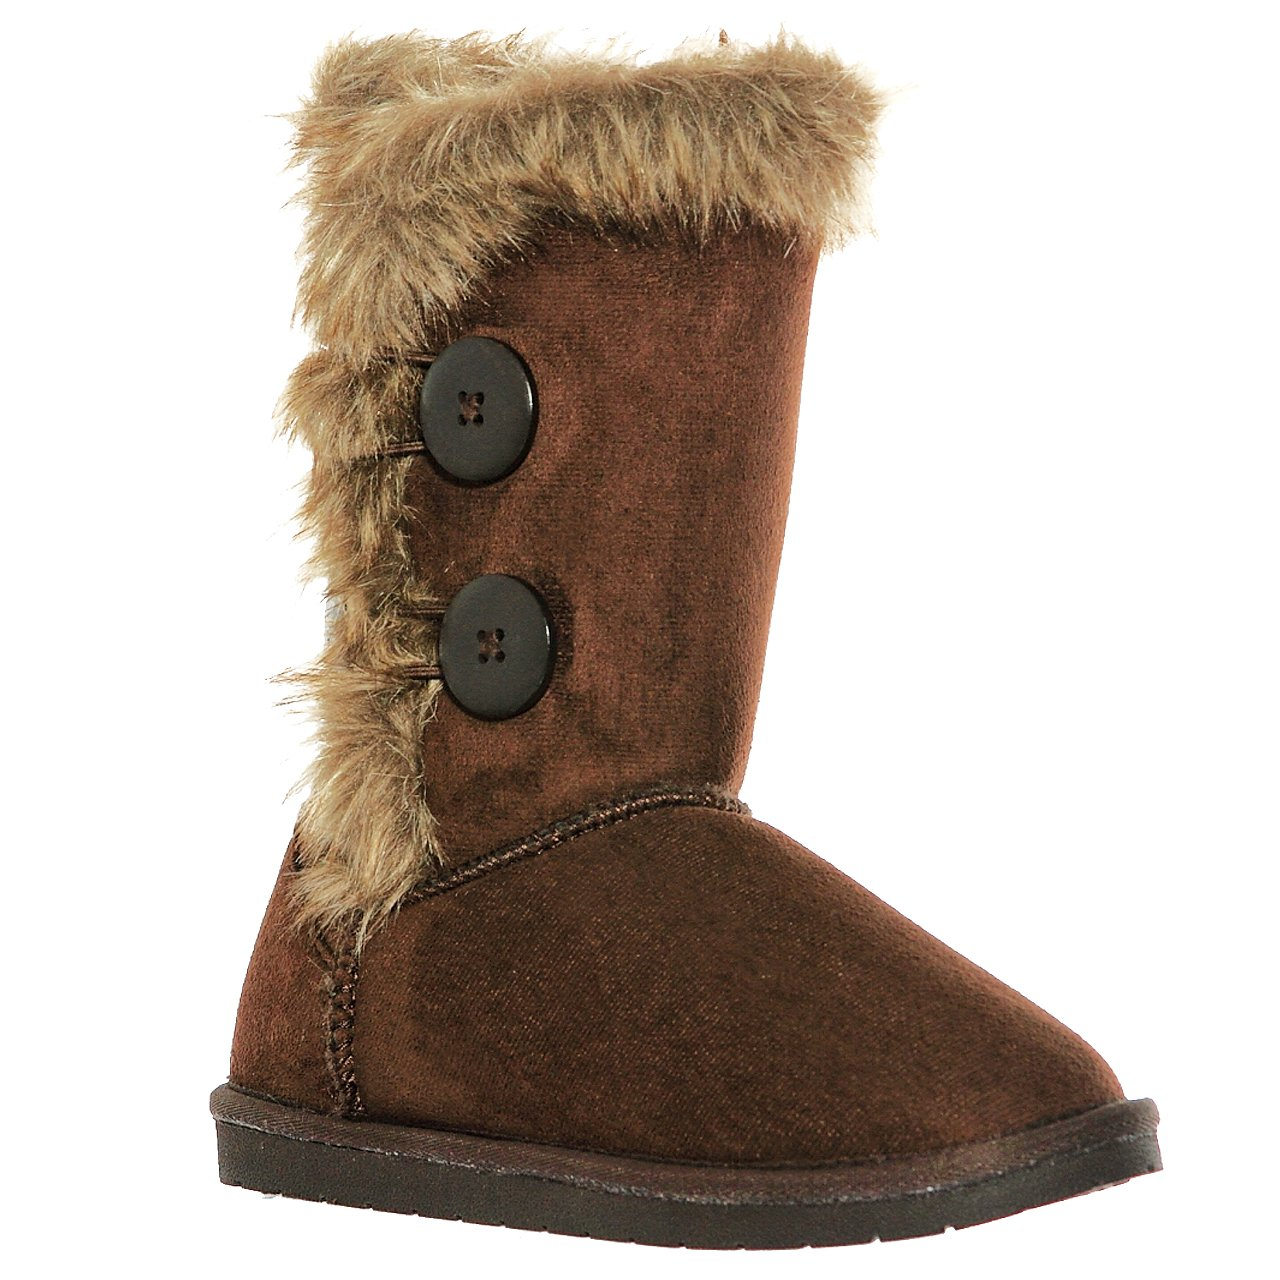 shoewhatever Fur Lined Mid-Calf Snow Boots (8, brownel)